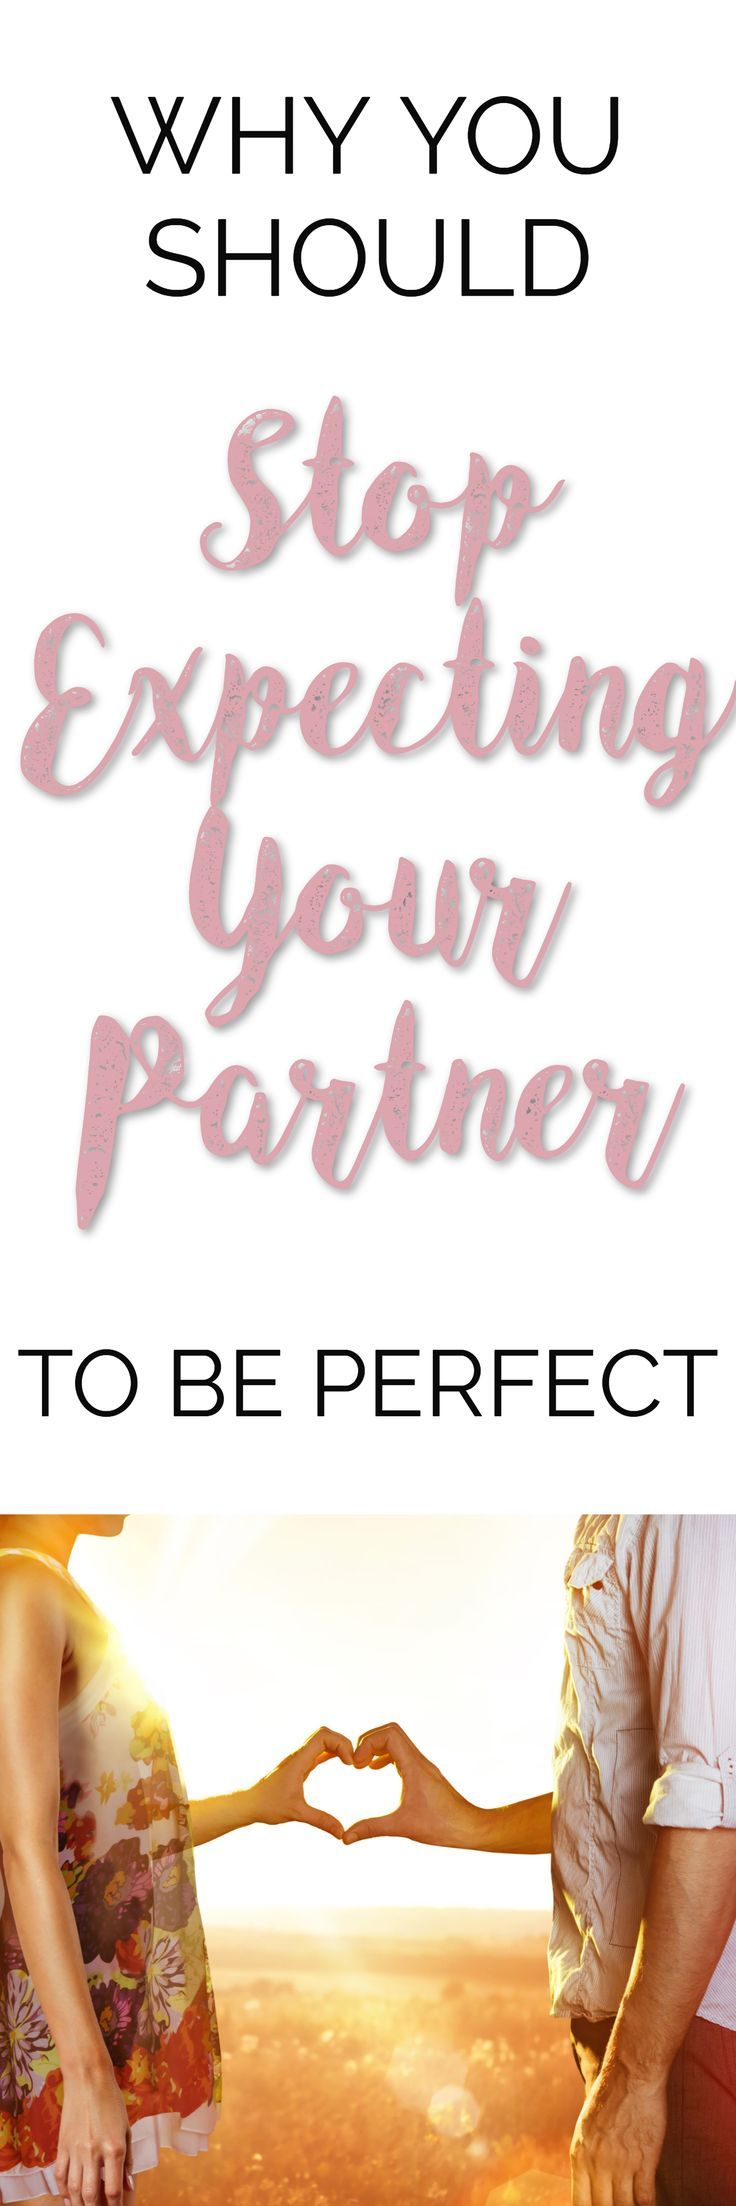 WHY YOU SHOULD STOP EXPECTING YOUR PARTNER TO BE PERFECT | Relationship goals | Relationship advice | Marriage advice | Love advice | Relationships are hard | Marriage goals | How to get married | How to strengthen your relationship